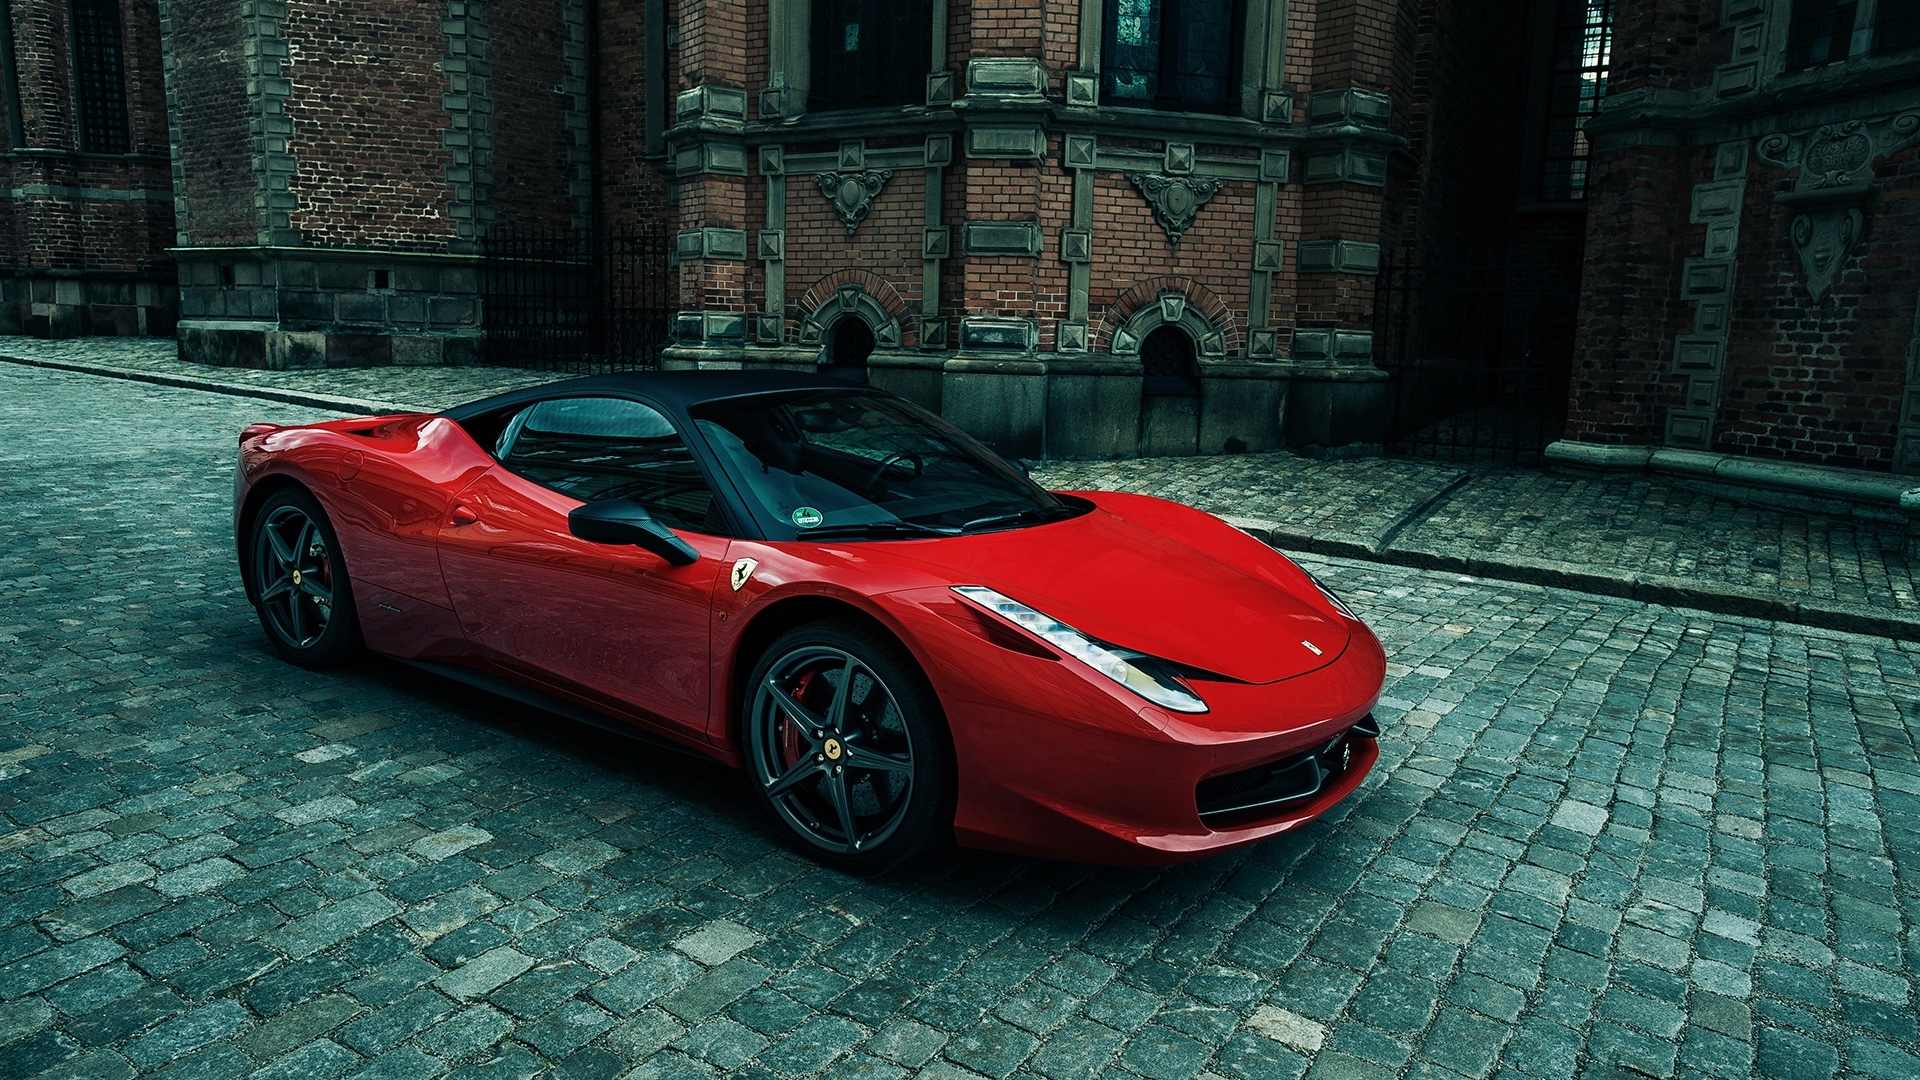 sporty ferrari 458 italia wallpaper | hd car wallpapers| id #3239